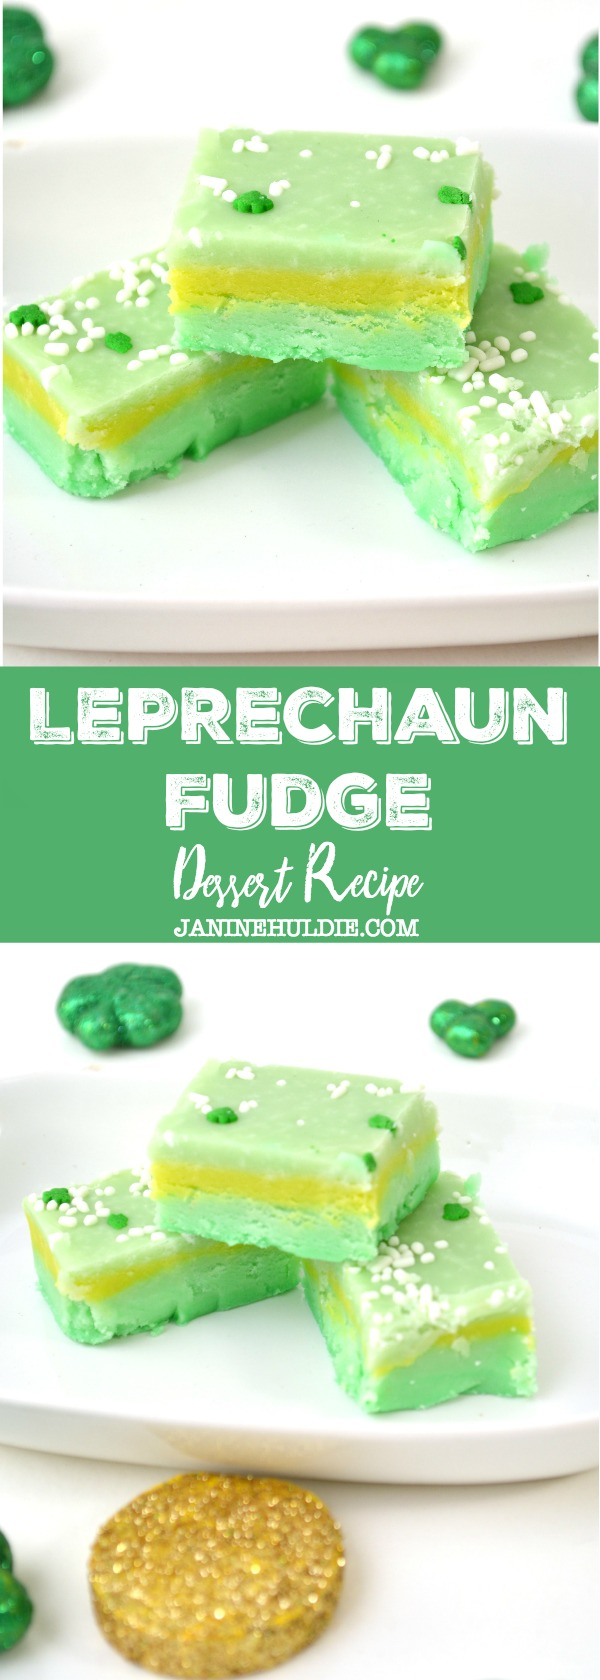 Leprechaun Fudge Dessert Recipe